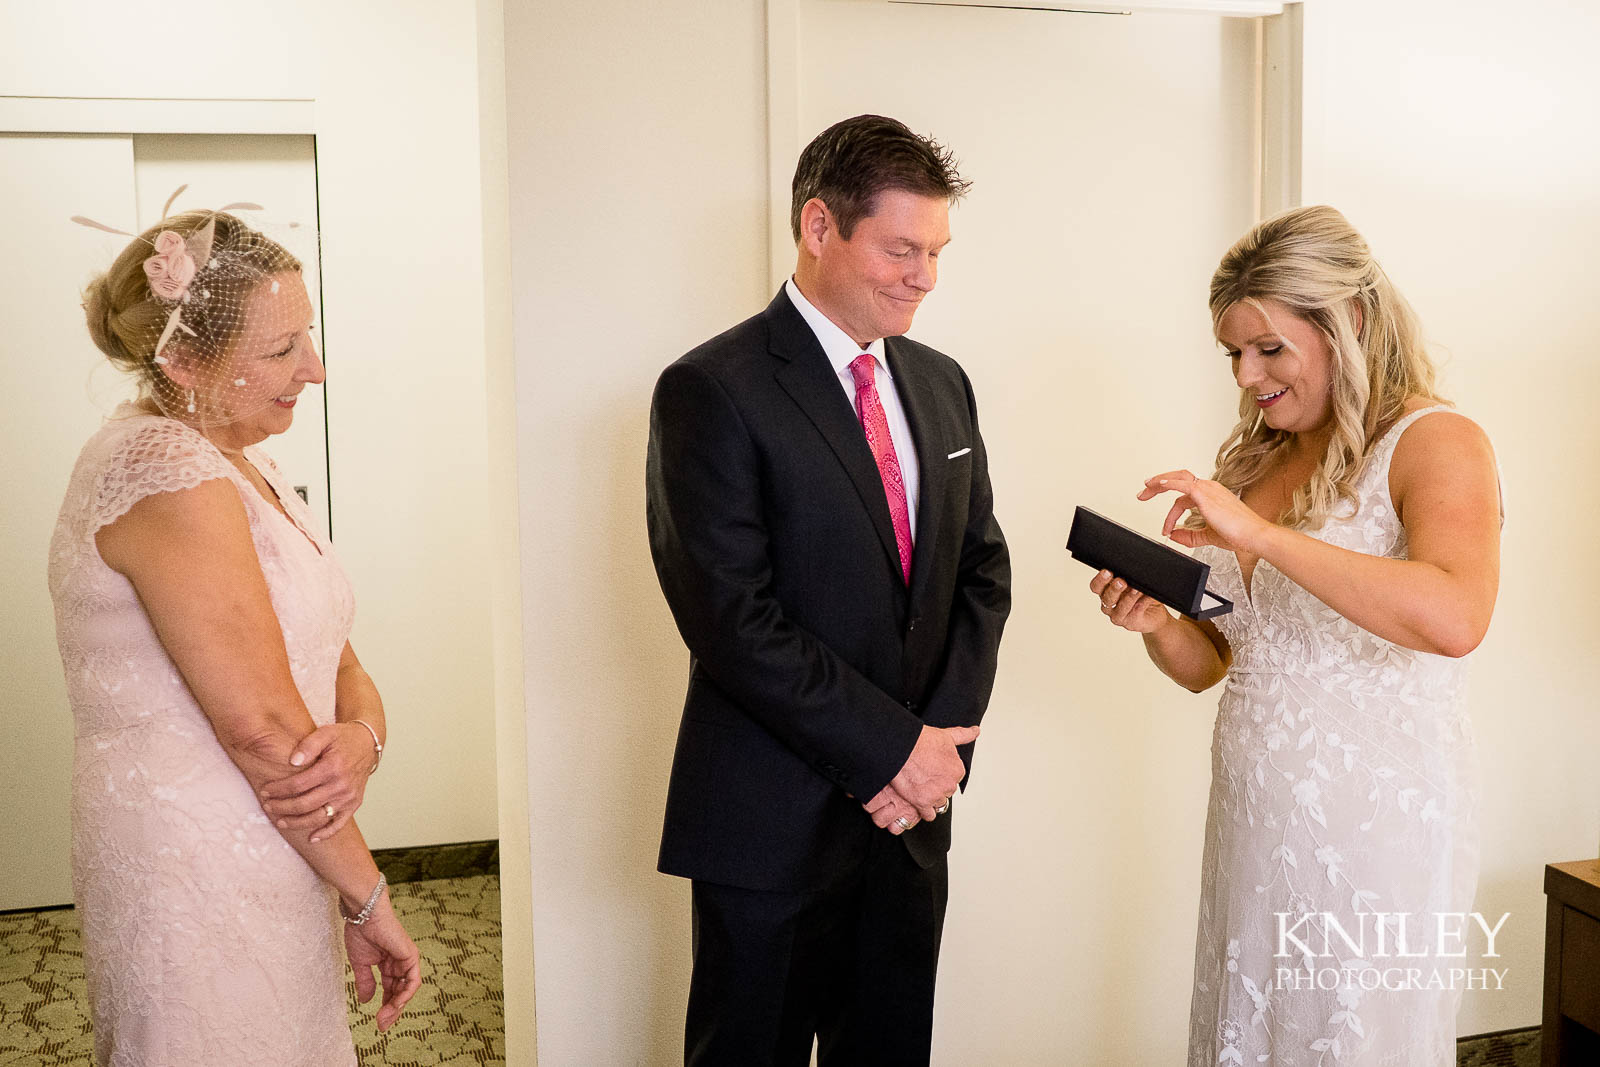 06-Hilton-Garden-Inn-Downtown-Wedding-Getting-Ready-Rochester-NY-Kniley-Photography.jpg